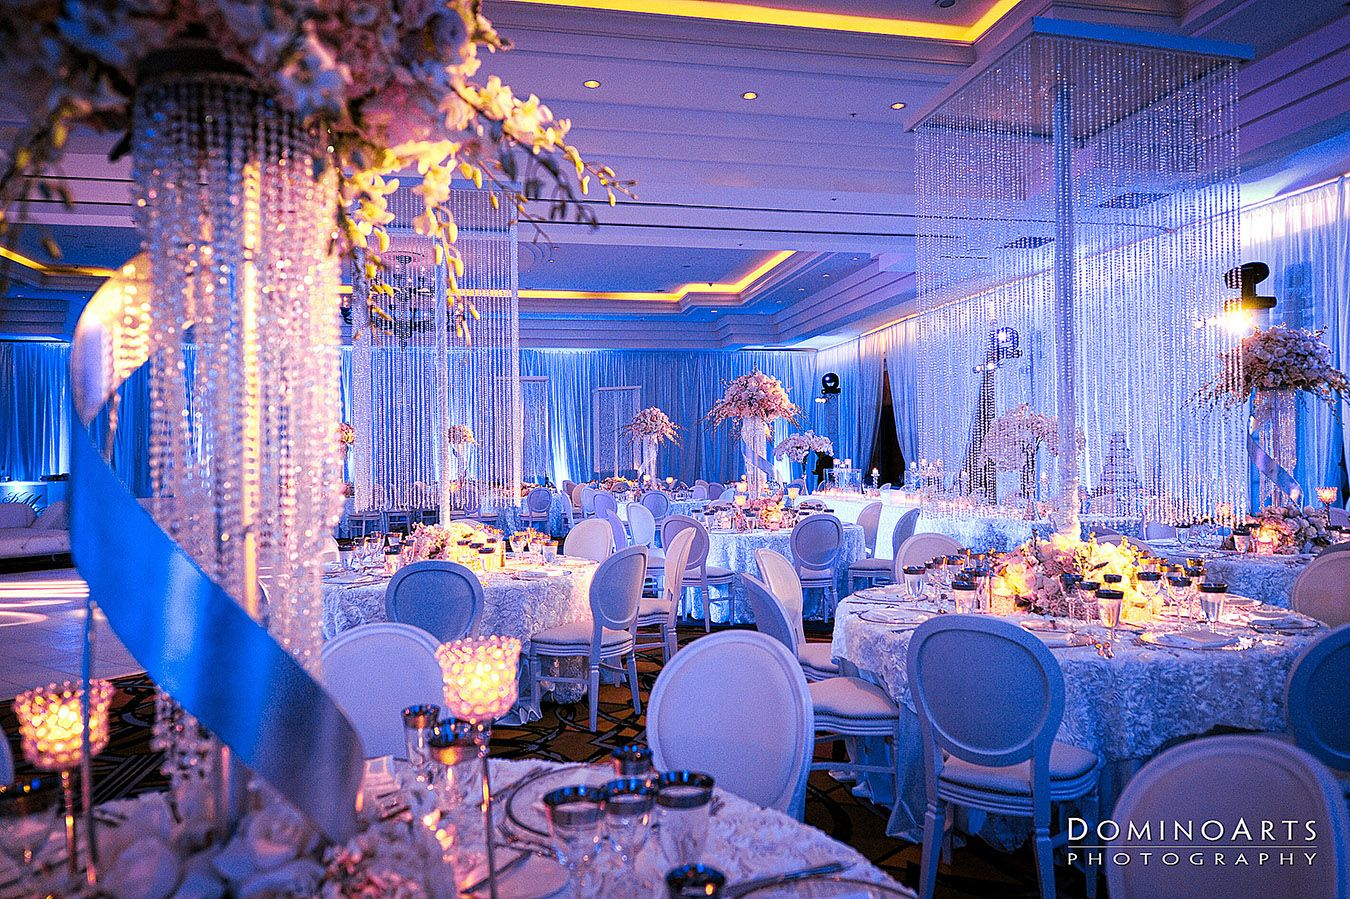 Wedding reception room weddings ideas pinterest weddingideas dare to dream qual quest tiffany blue and purple wedding decorations junglespirit Images